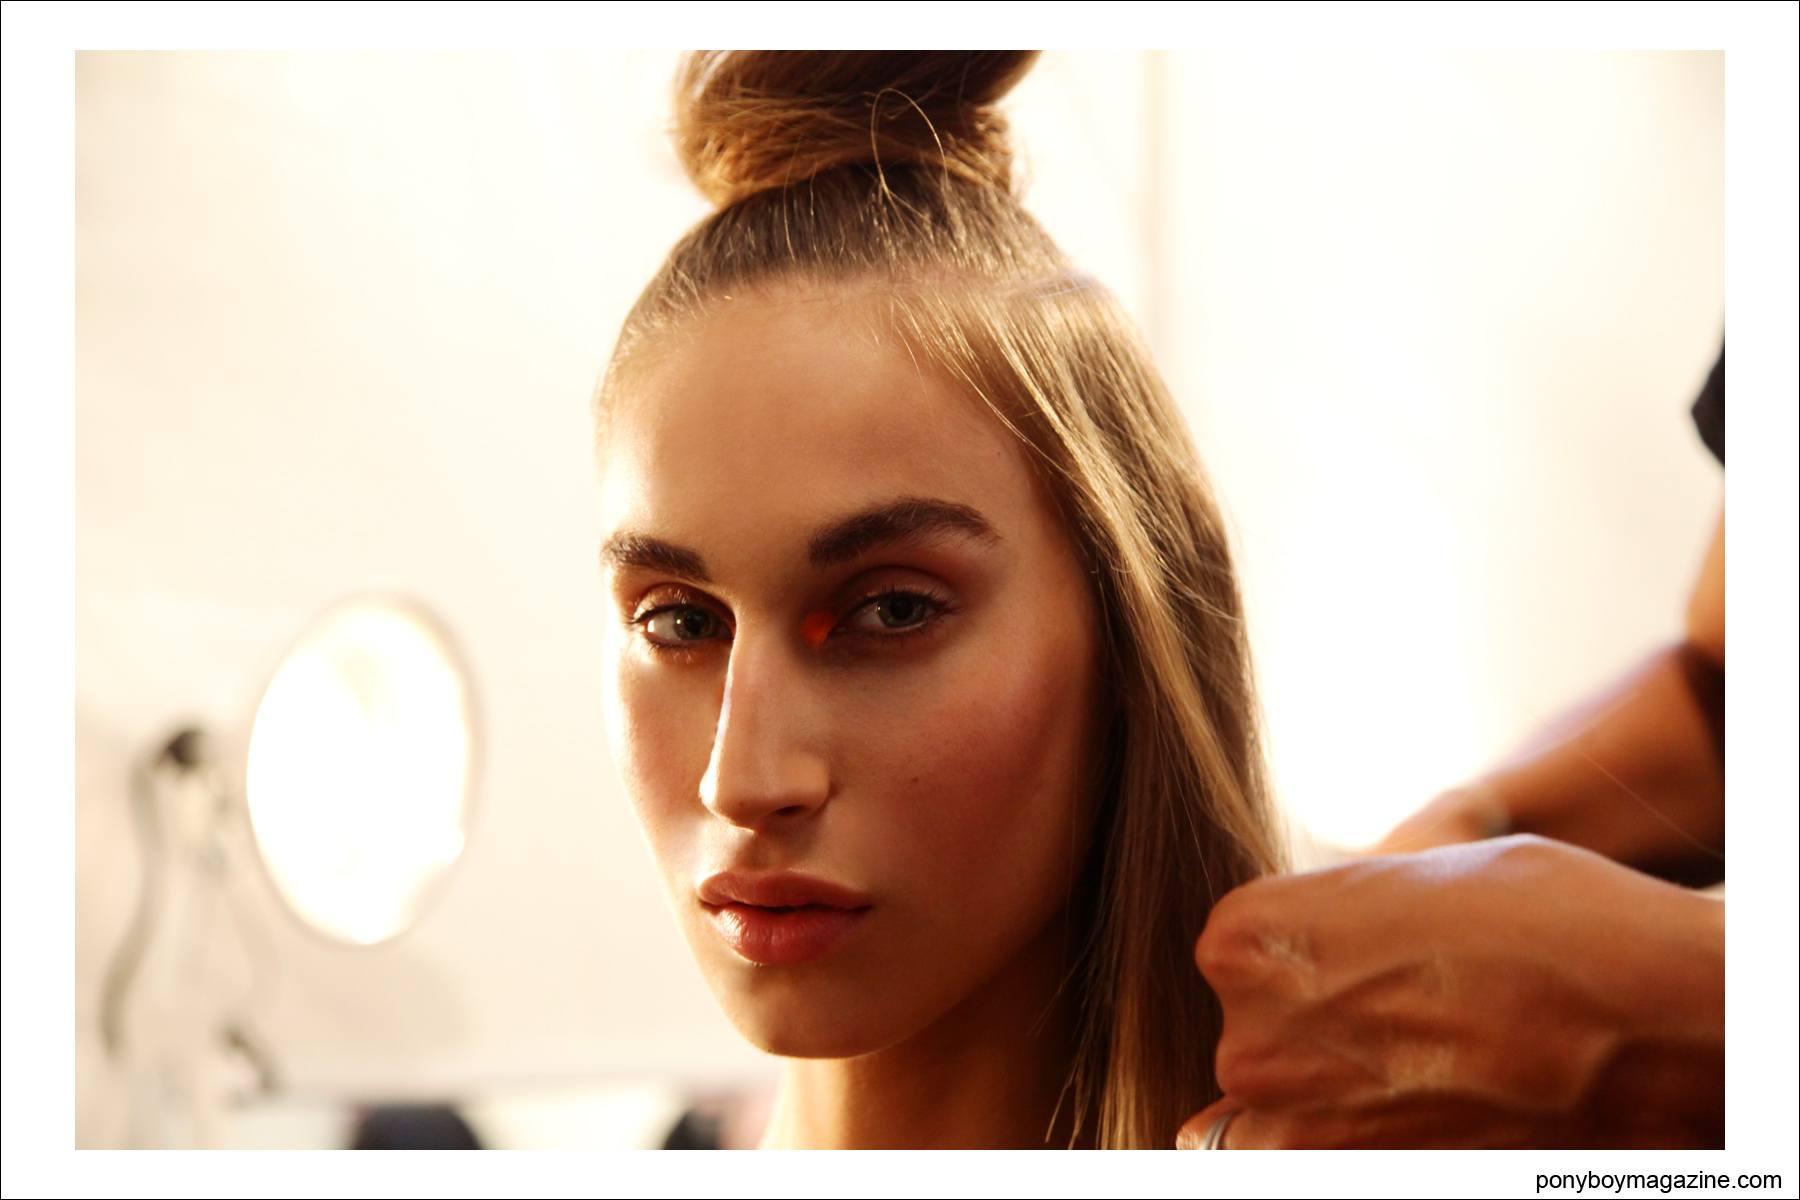 A model backstage getting her hair prepped for the Spring/Summer 2015 collection. Photograph by Alexander Thompson for Ponyboy Magazine.